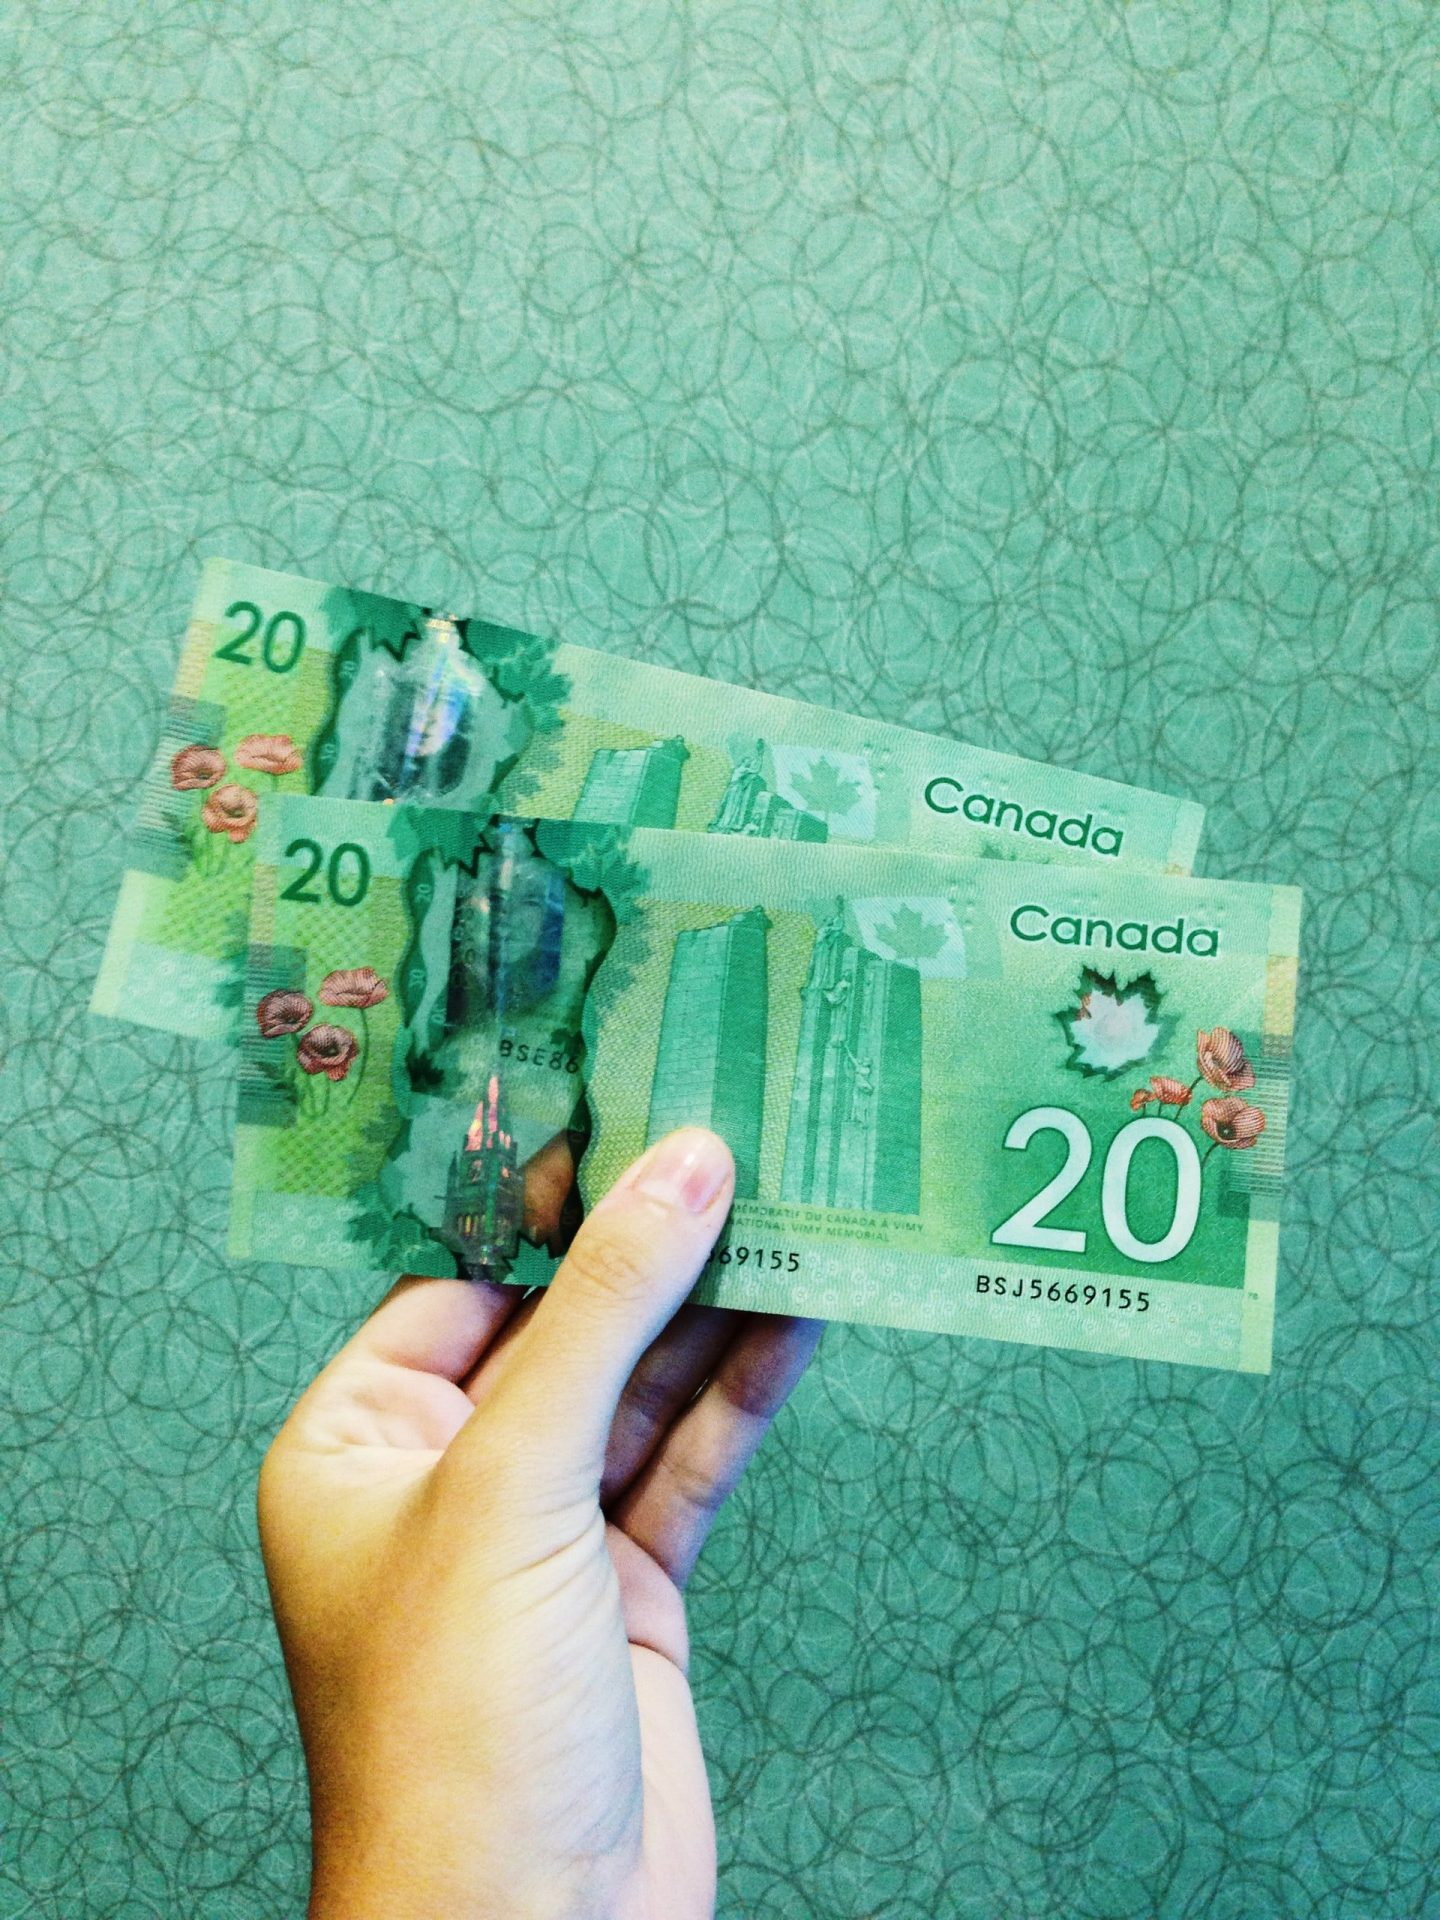 Women's hand with Canadian money